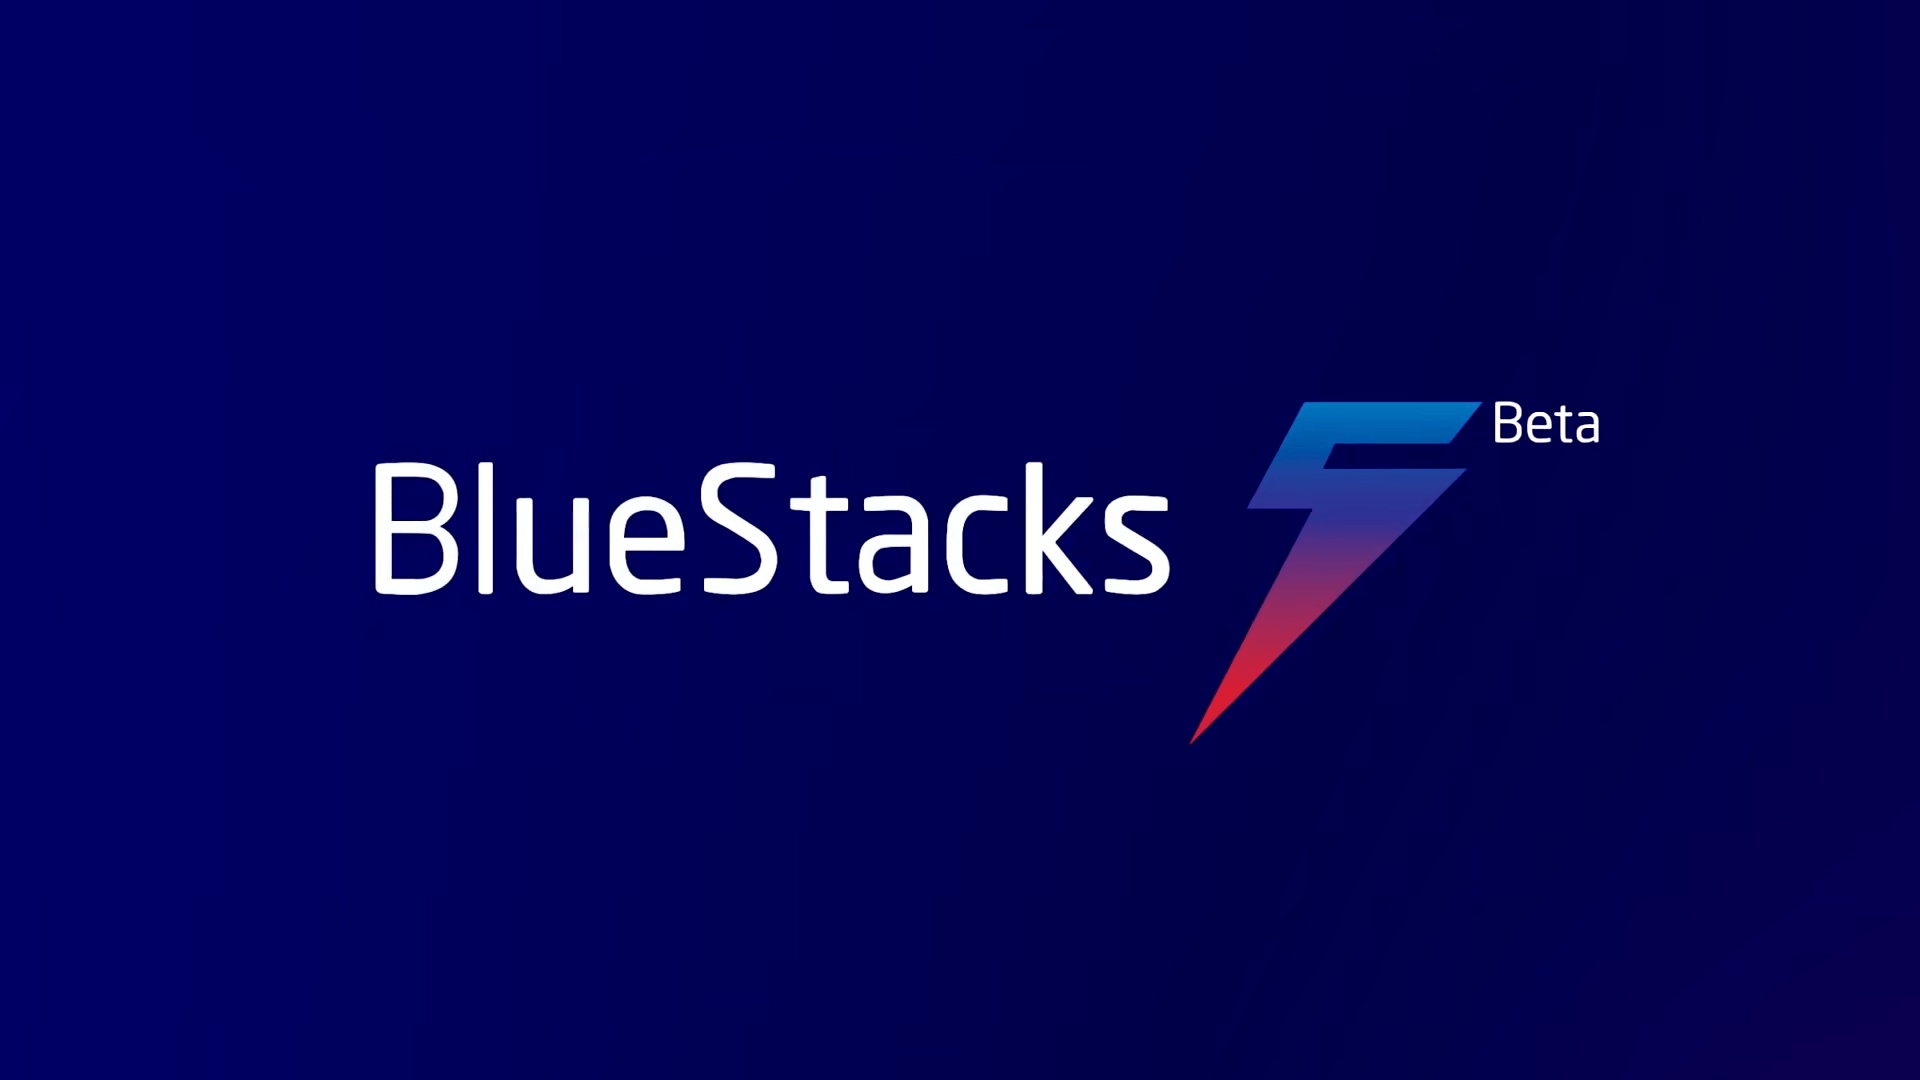 BlueStacks 5 Global Release – 7 Reasons Why You Should Try the New Version